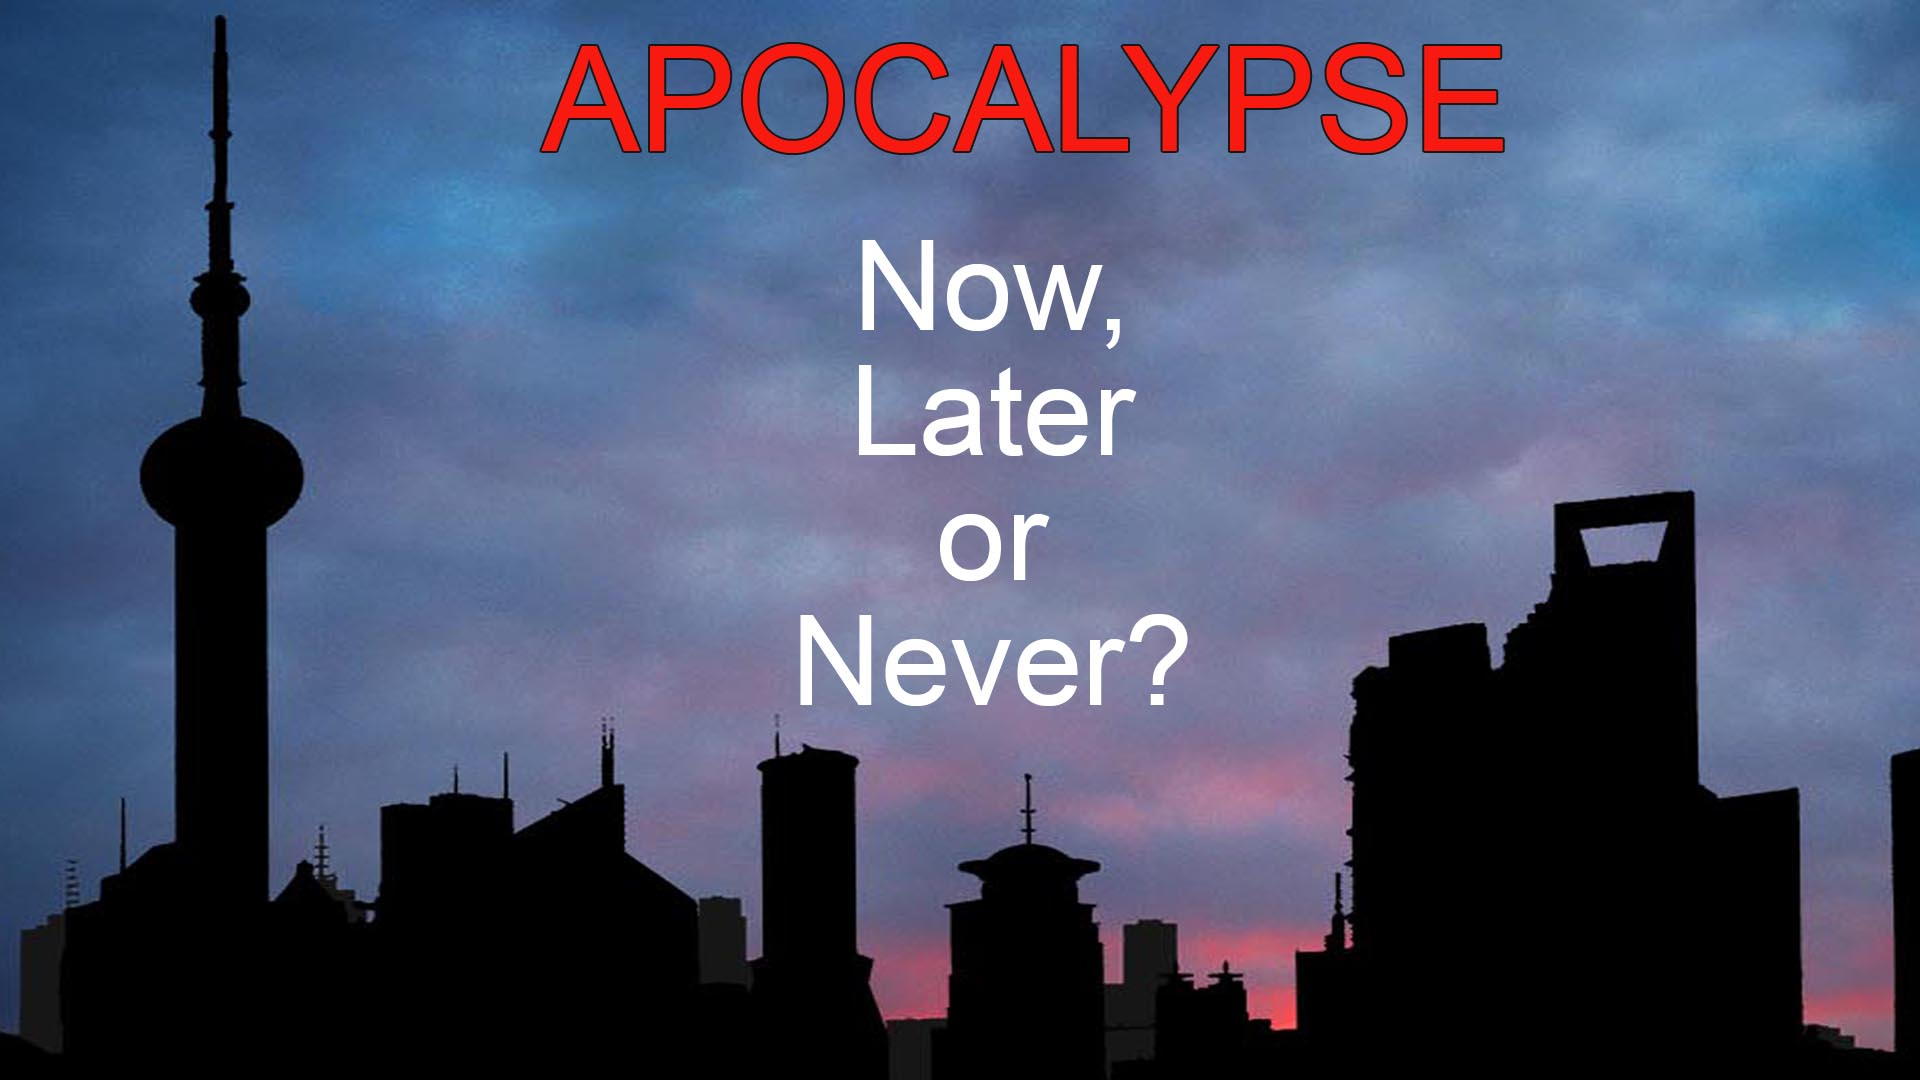 Apocalypse: Now, Later or Never -